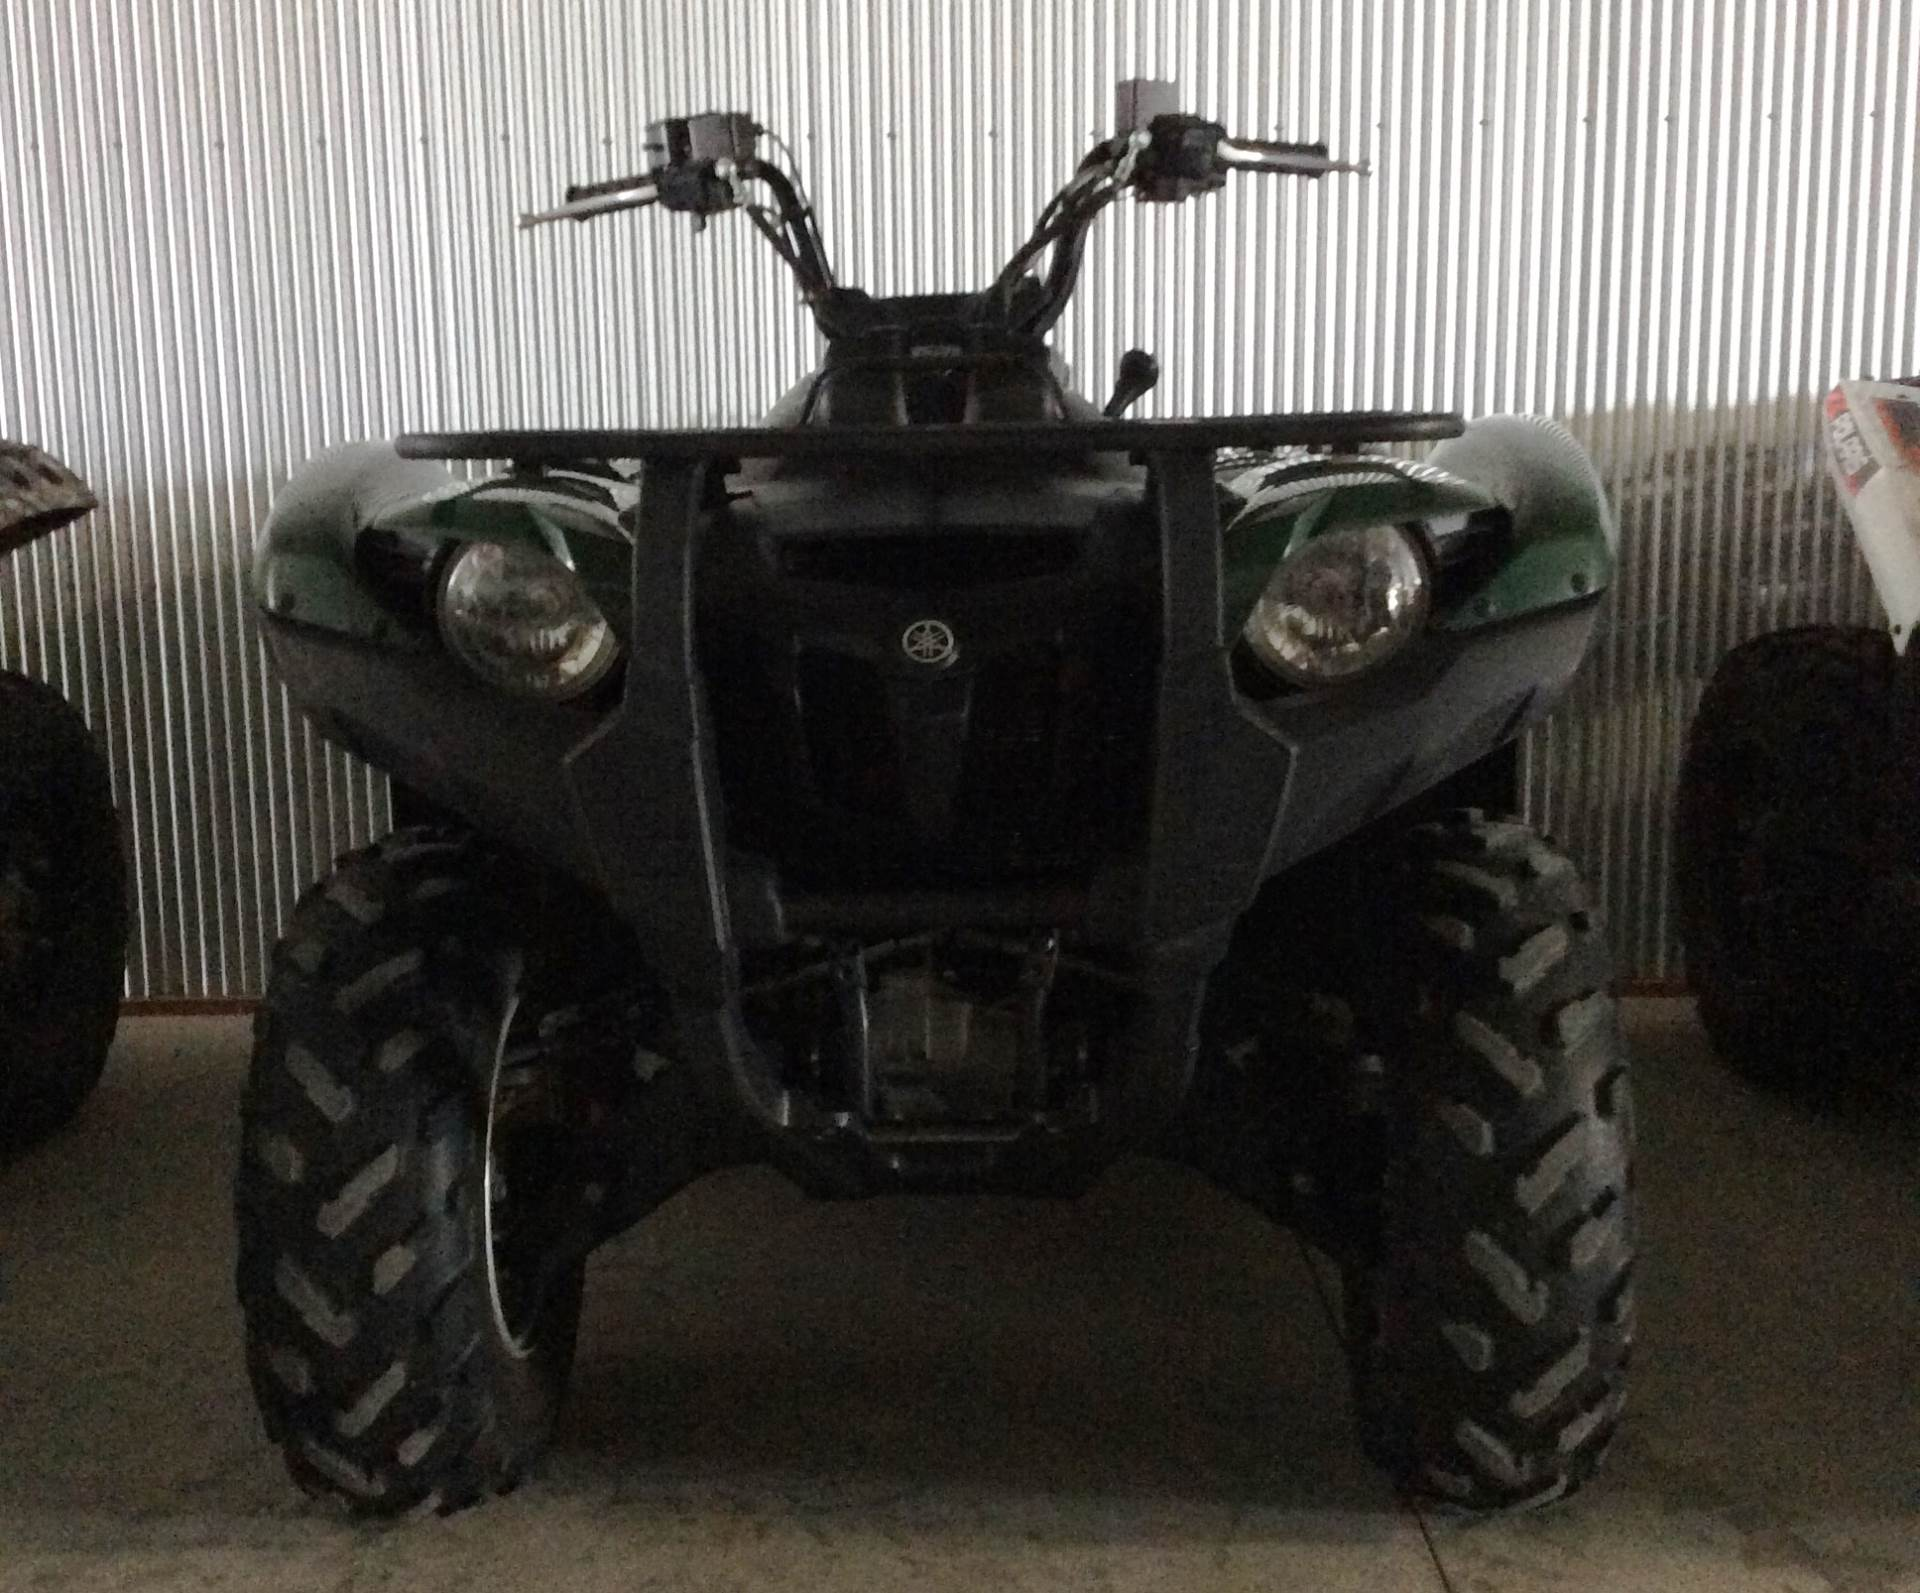 2013 Yamaha Grizzly 700 FI Auto. 4x4 EPS Special Edition in Ottumwa, Iowa